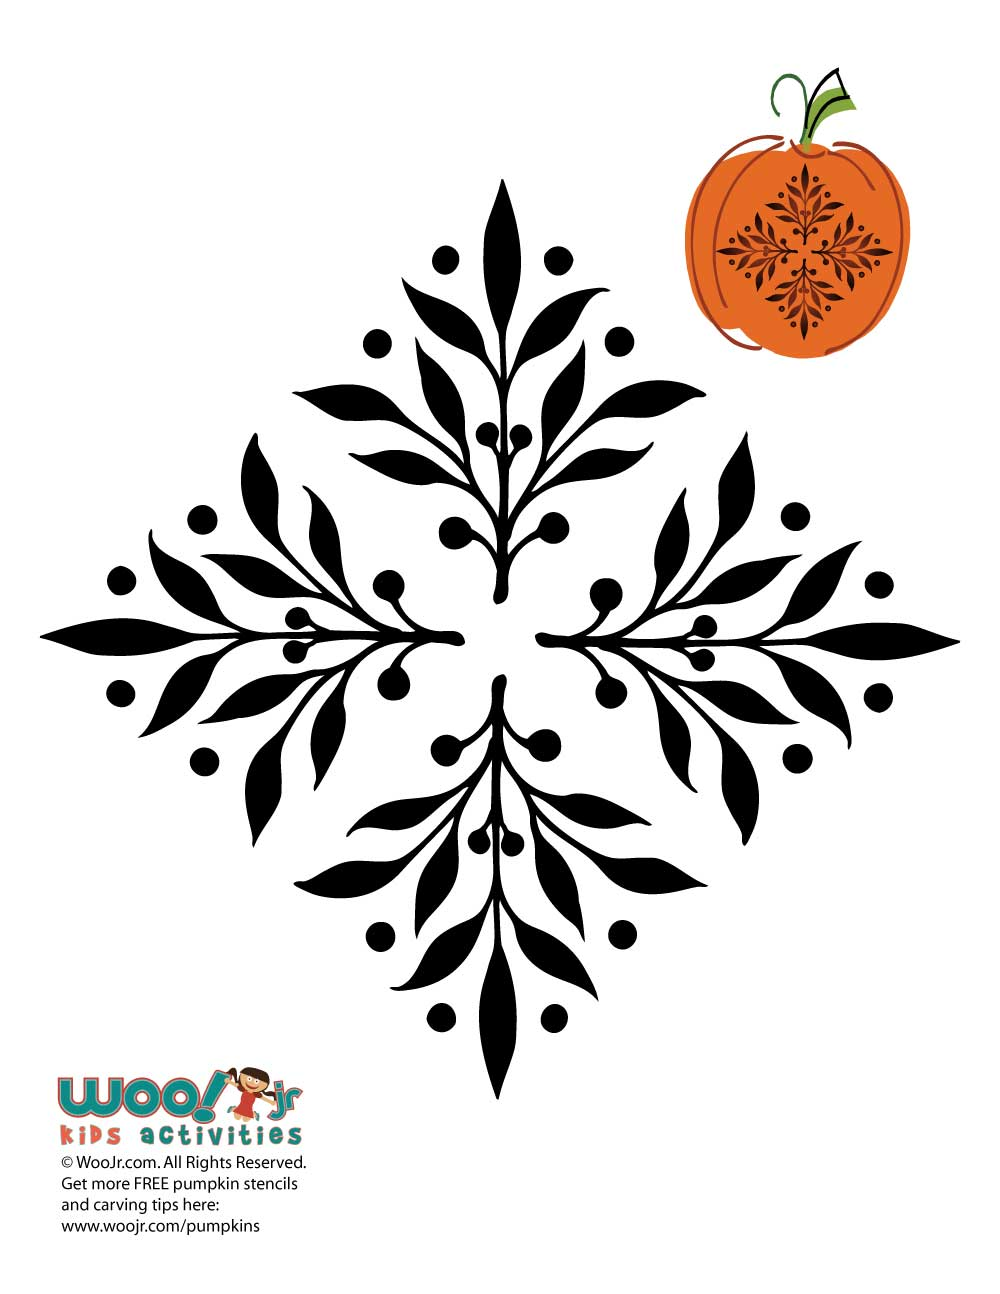 Elegant Ornament Pumpkin Carving Template | Woo! Jr. Kids Activities